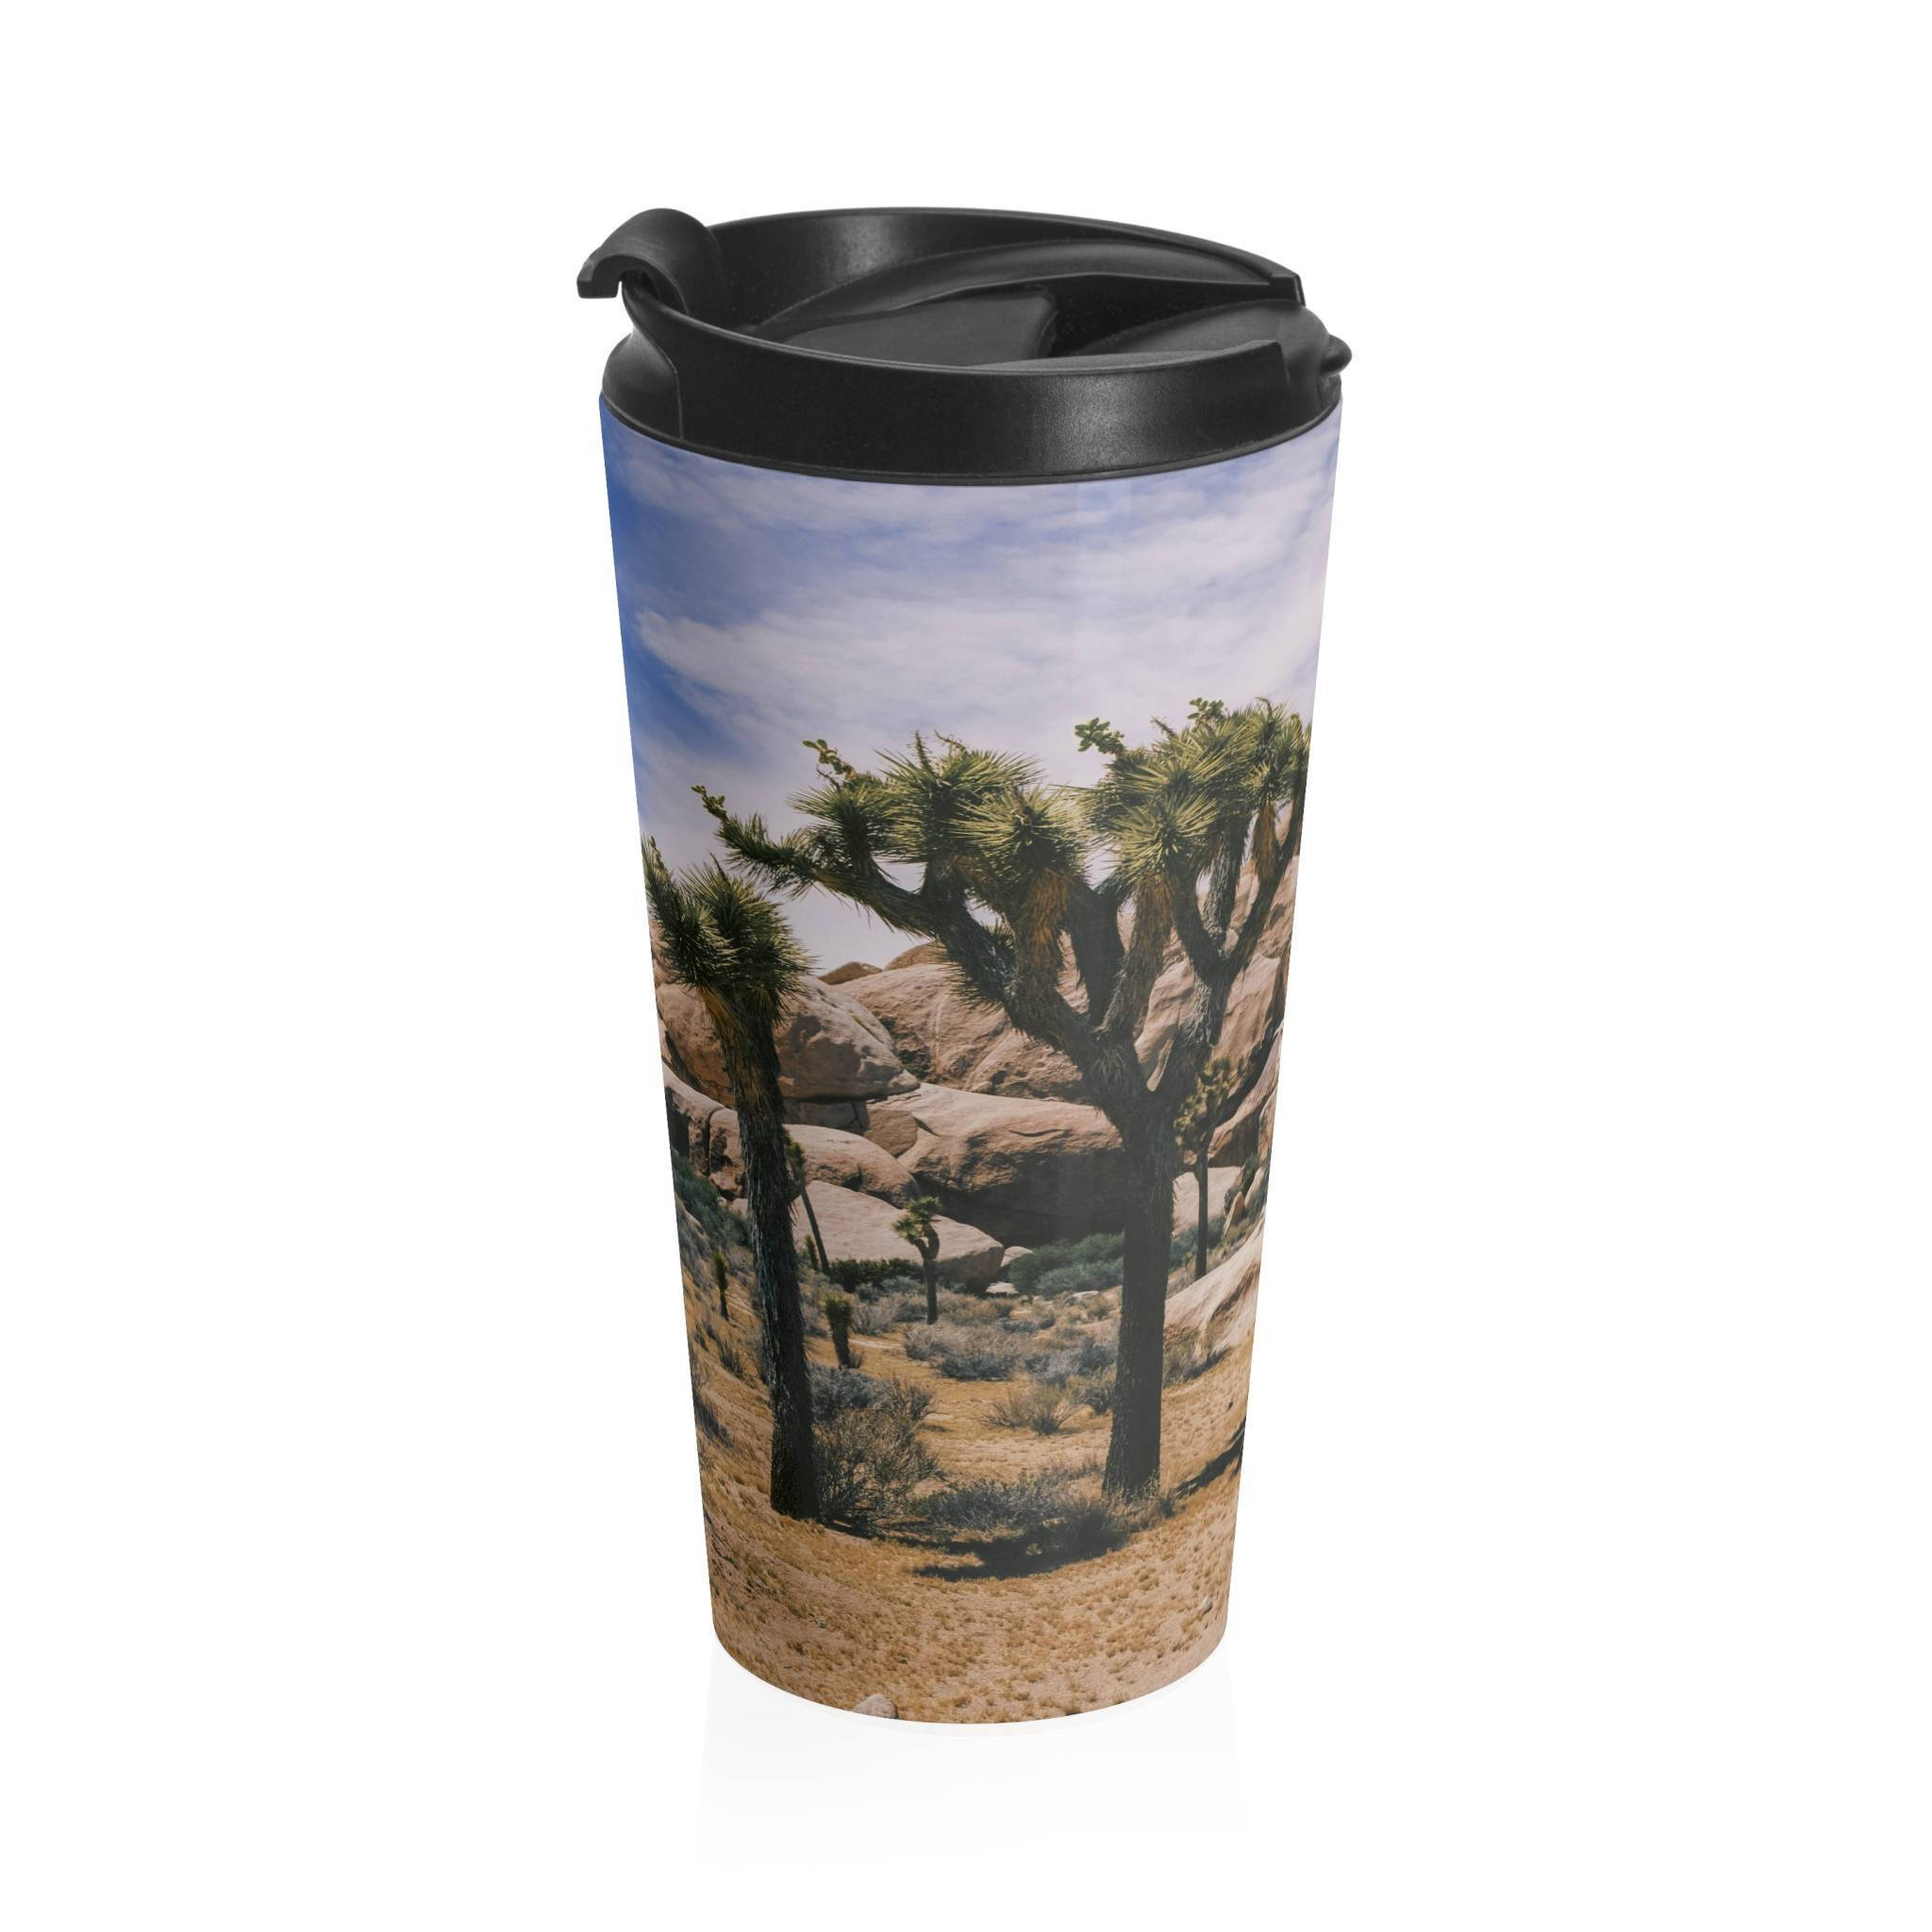 Joshua Tree Stainless Steel Travel Mug Lost in Nature